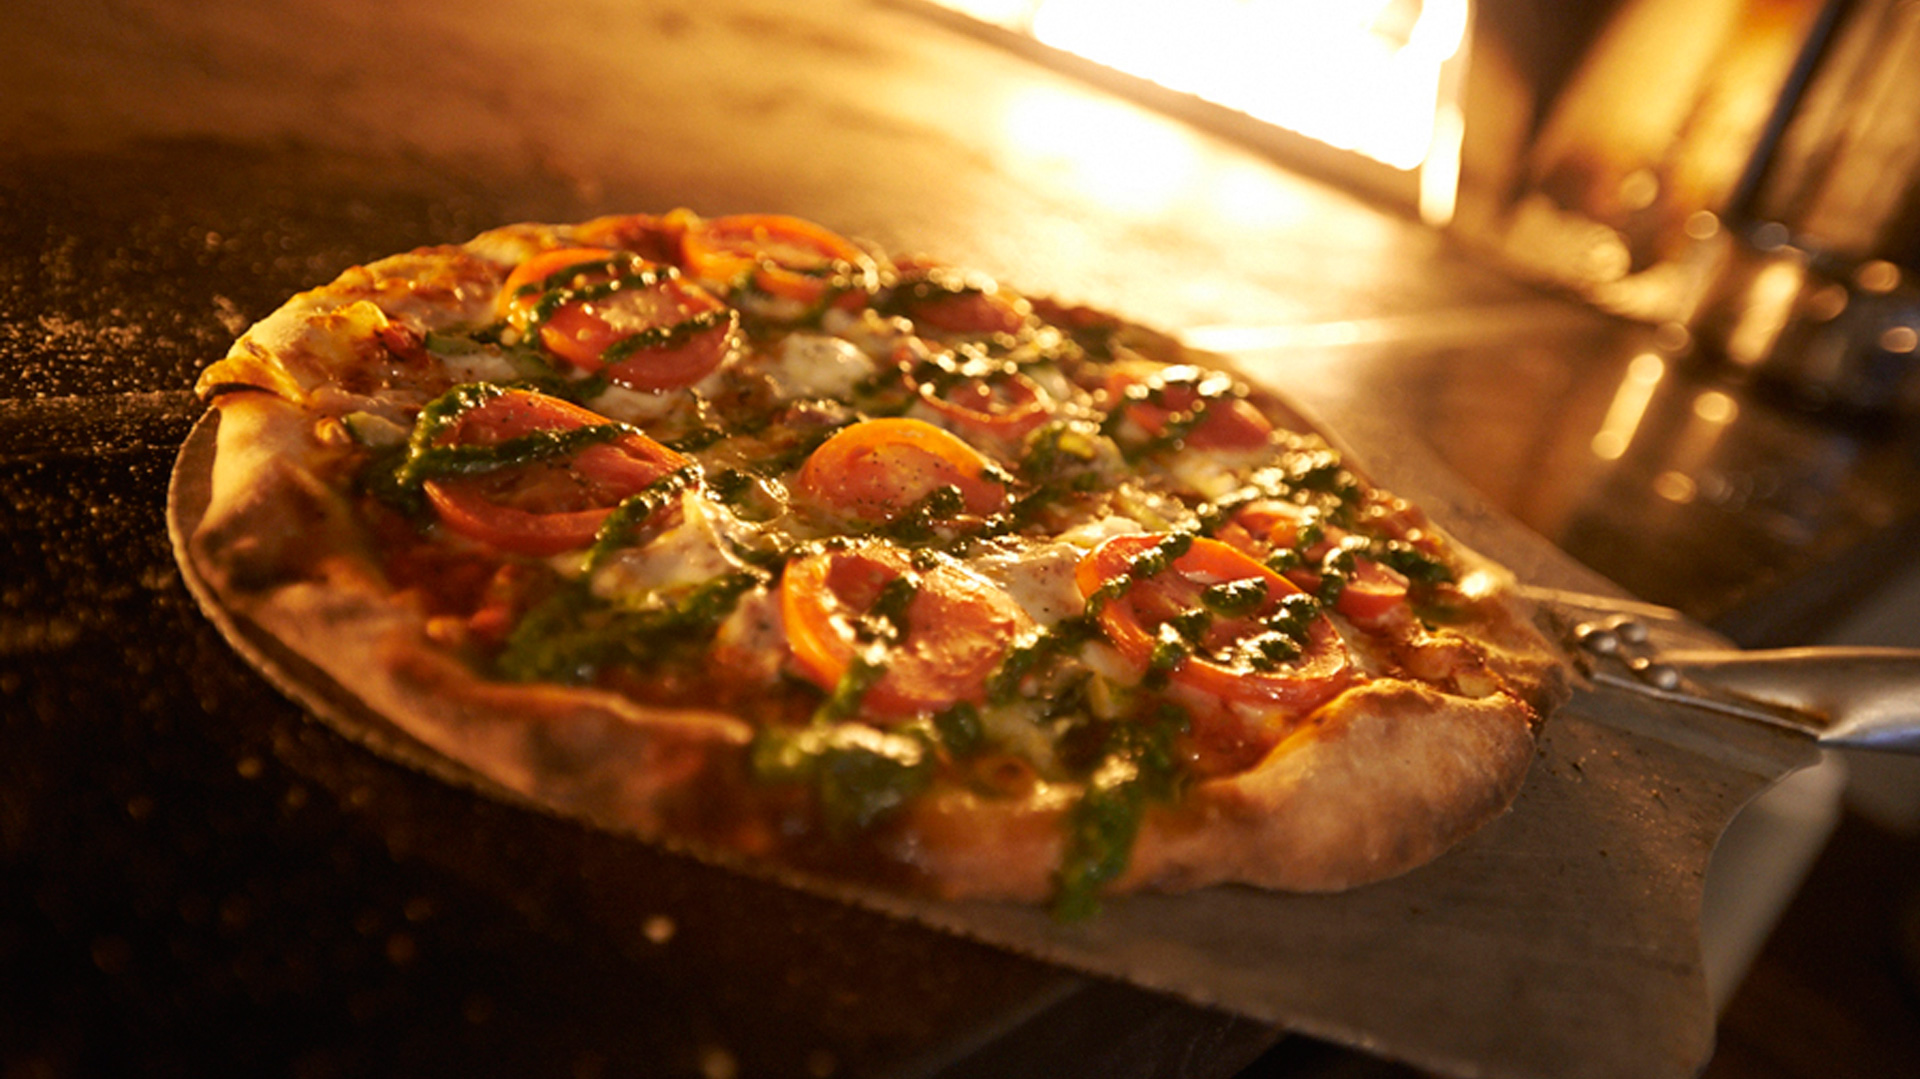 A tomato-topped pizza comes out of the oven at Masseria Kitchen & Bar in Blue Ridge